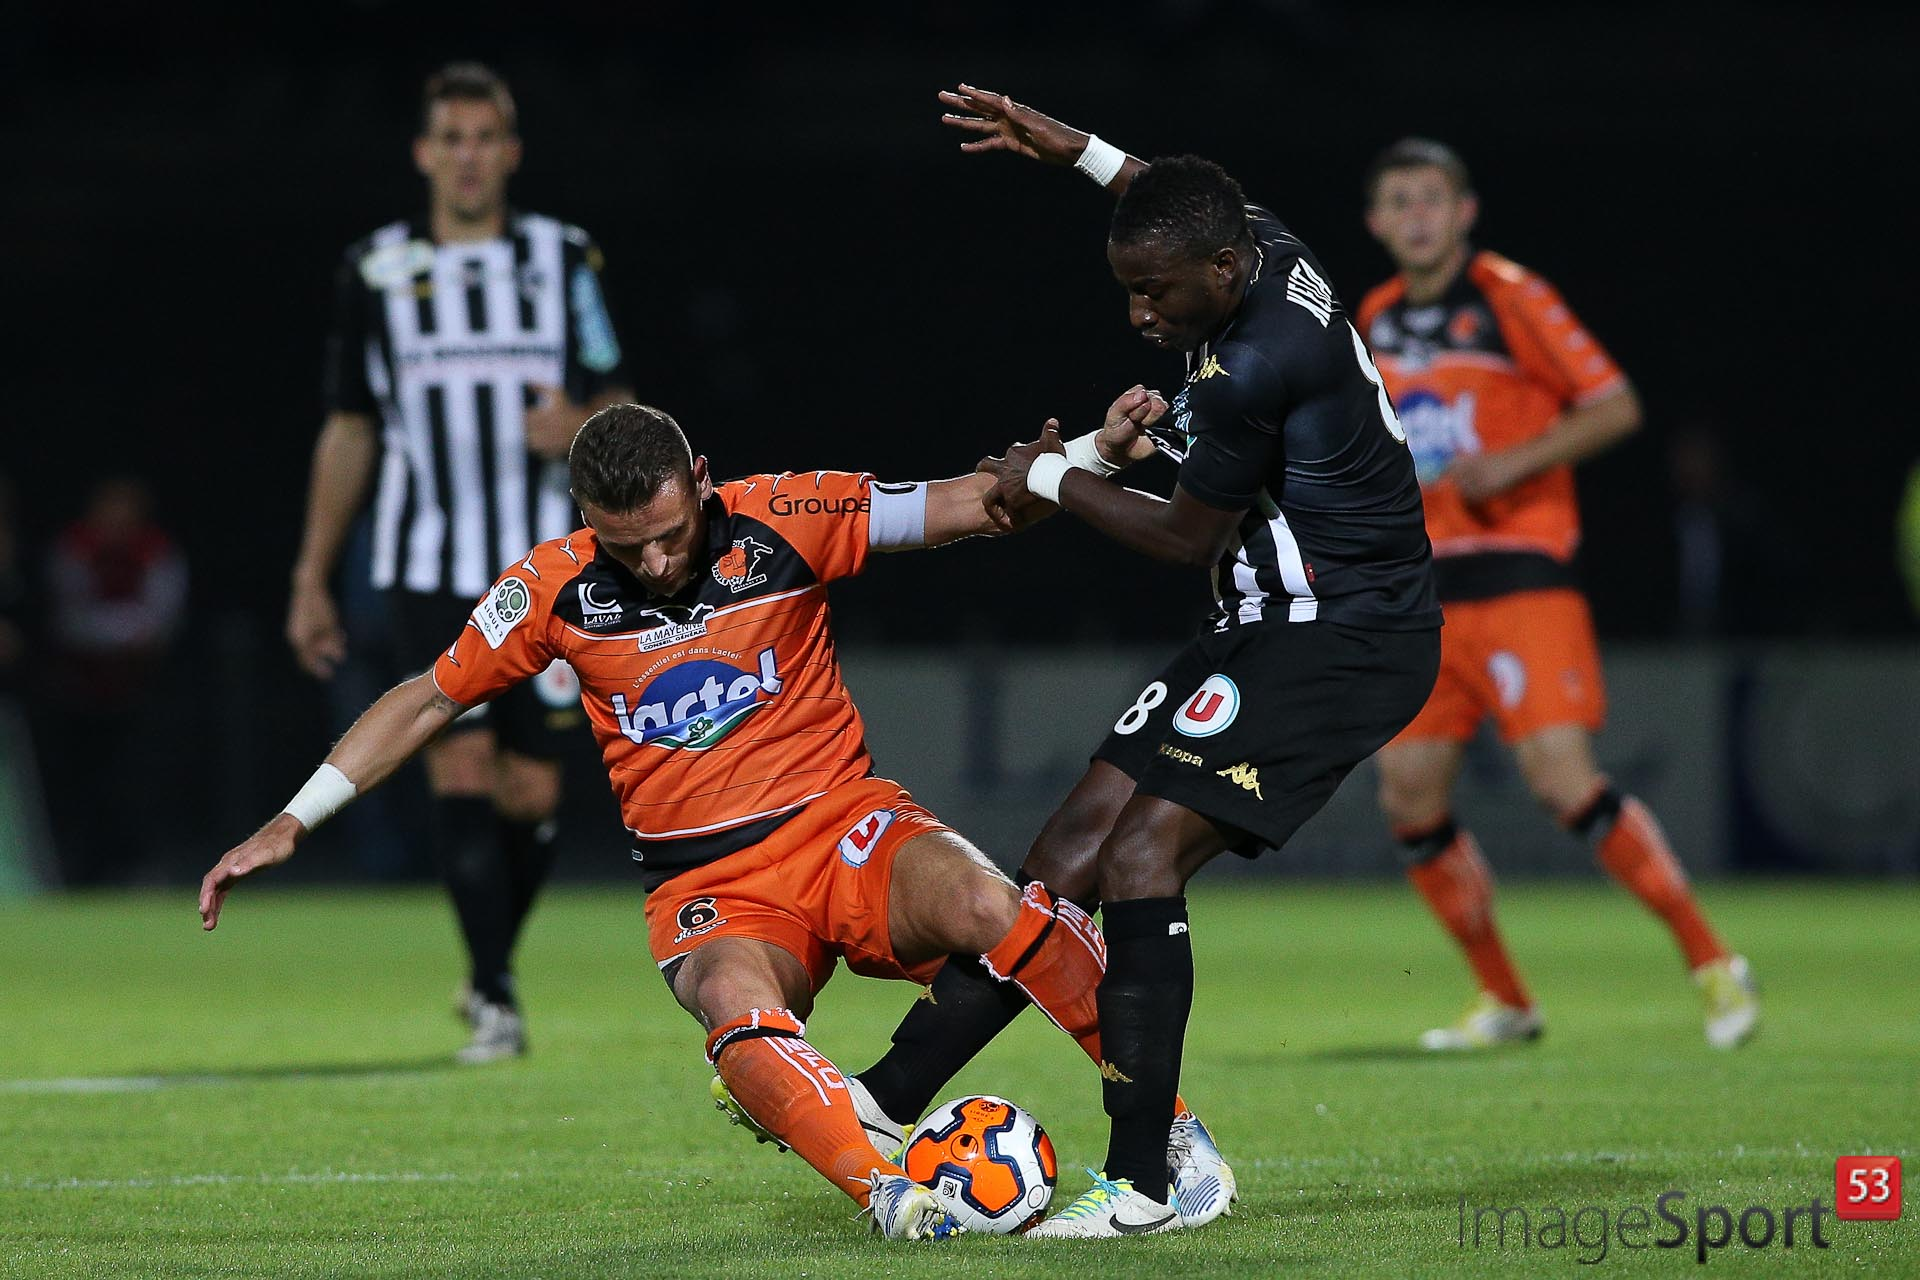 NG_1314_Ligue2_J06_Laval-Angers_7